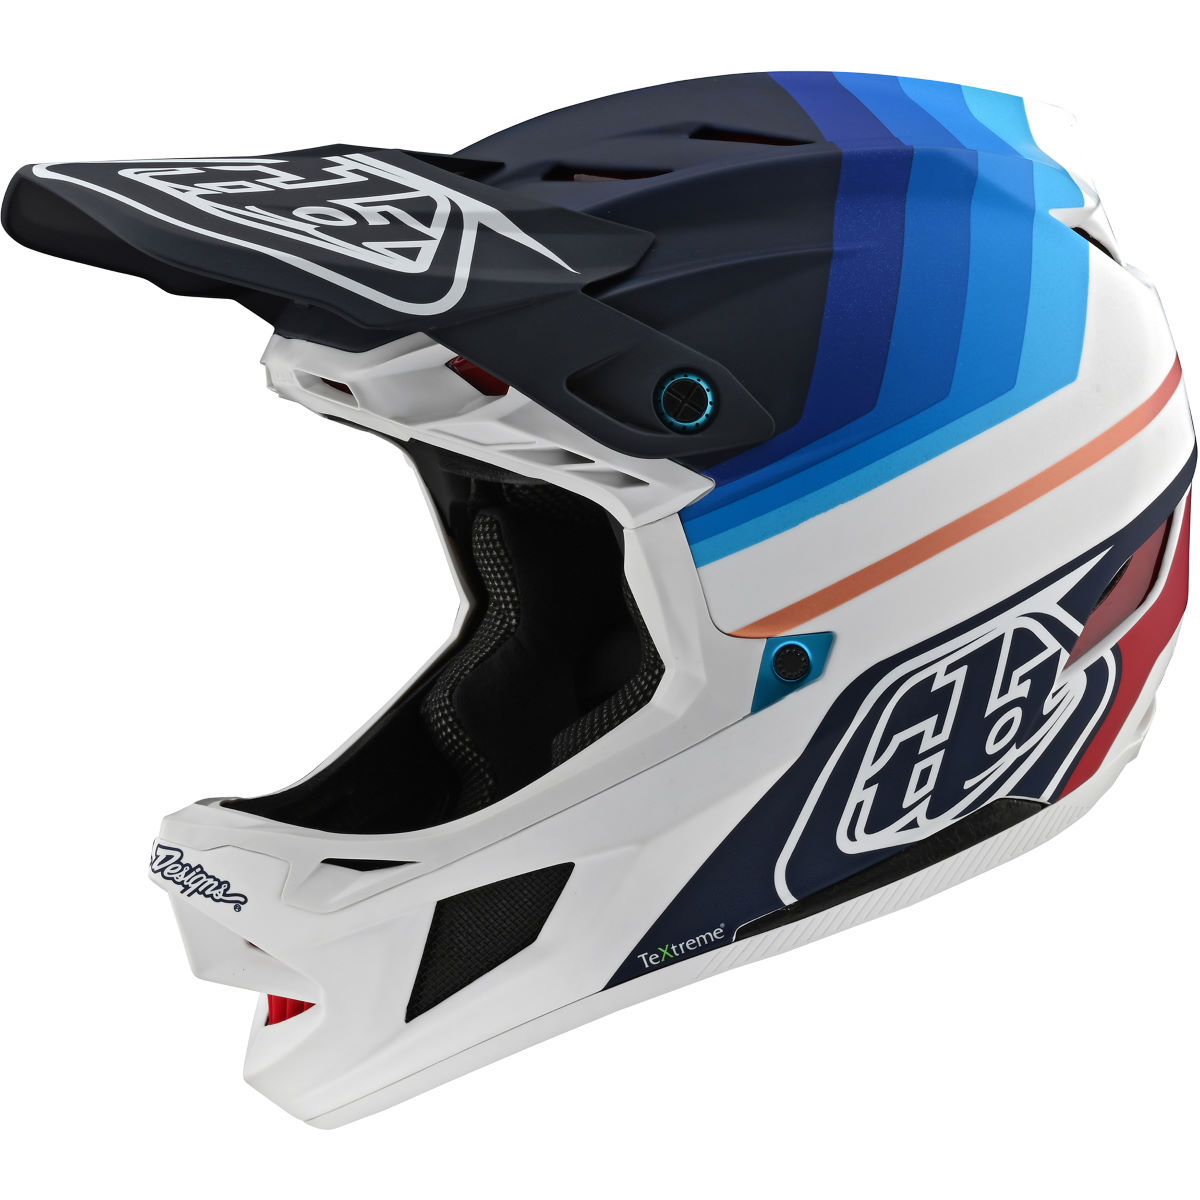 Image of Troy Lee Designs D4 Carbon Mirage Helmet Helmets